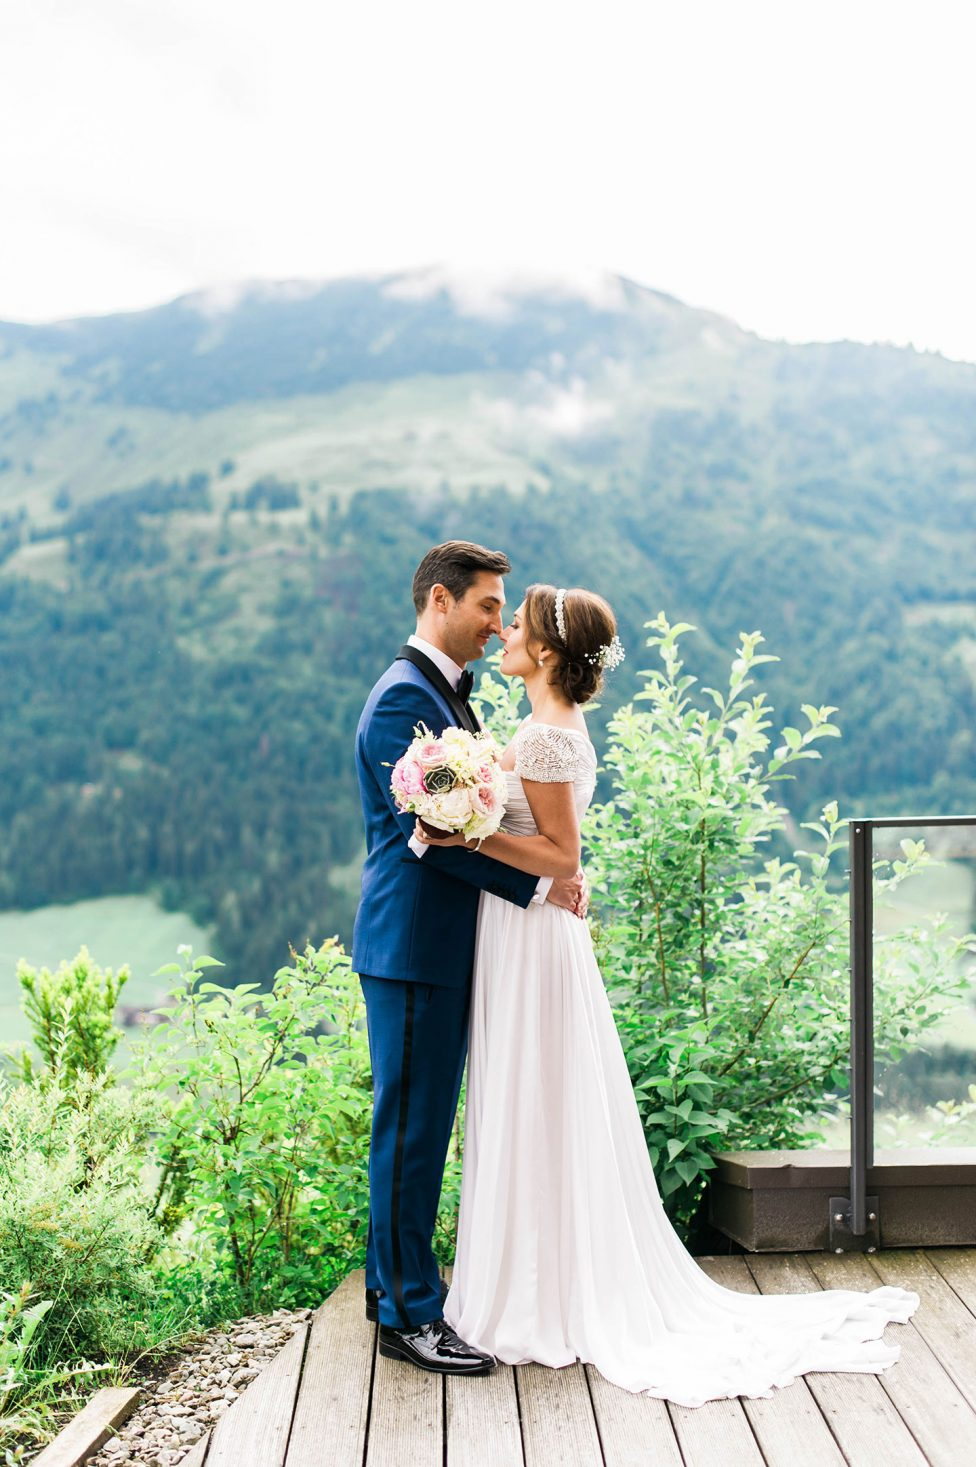 Maierl-Alm: Best day ever!